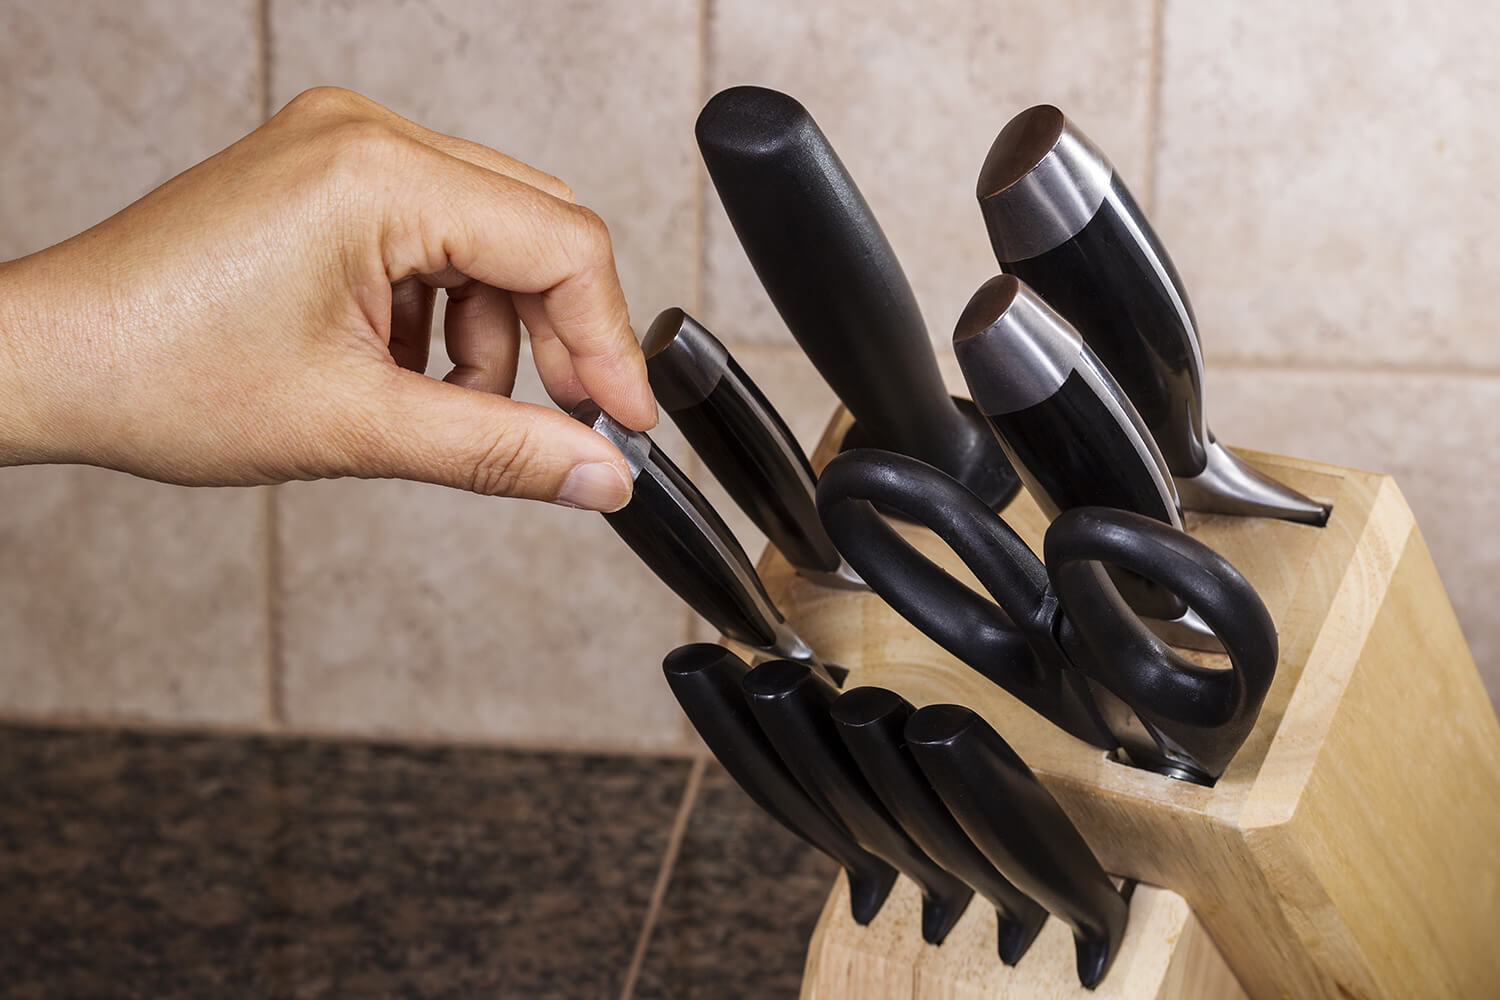 Wooden Knife Block - How To Clean in 9 Simple Steps